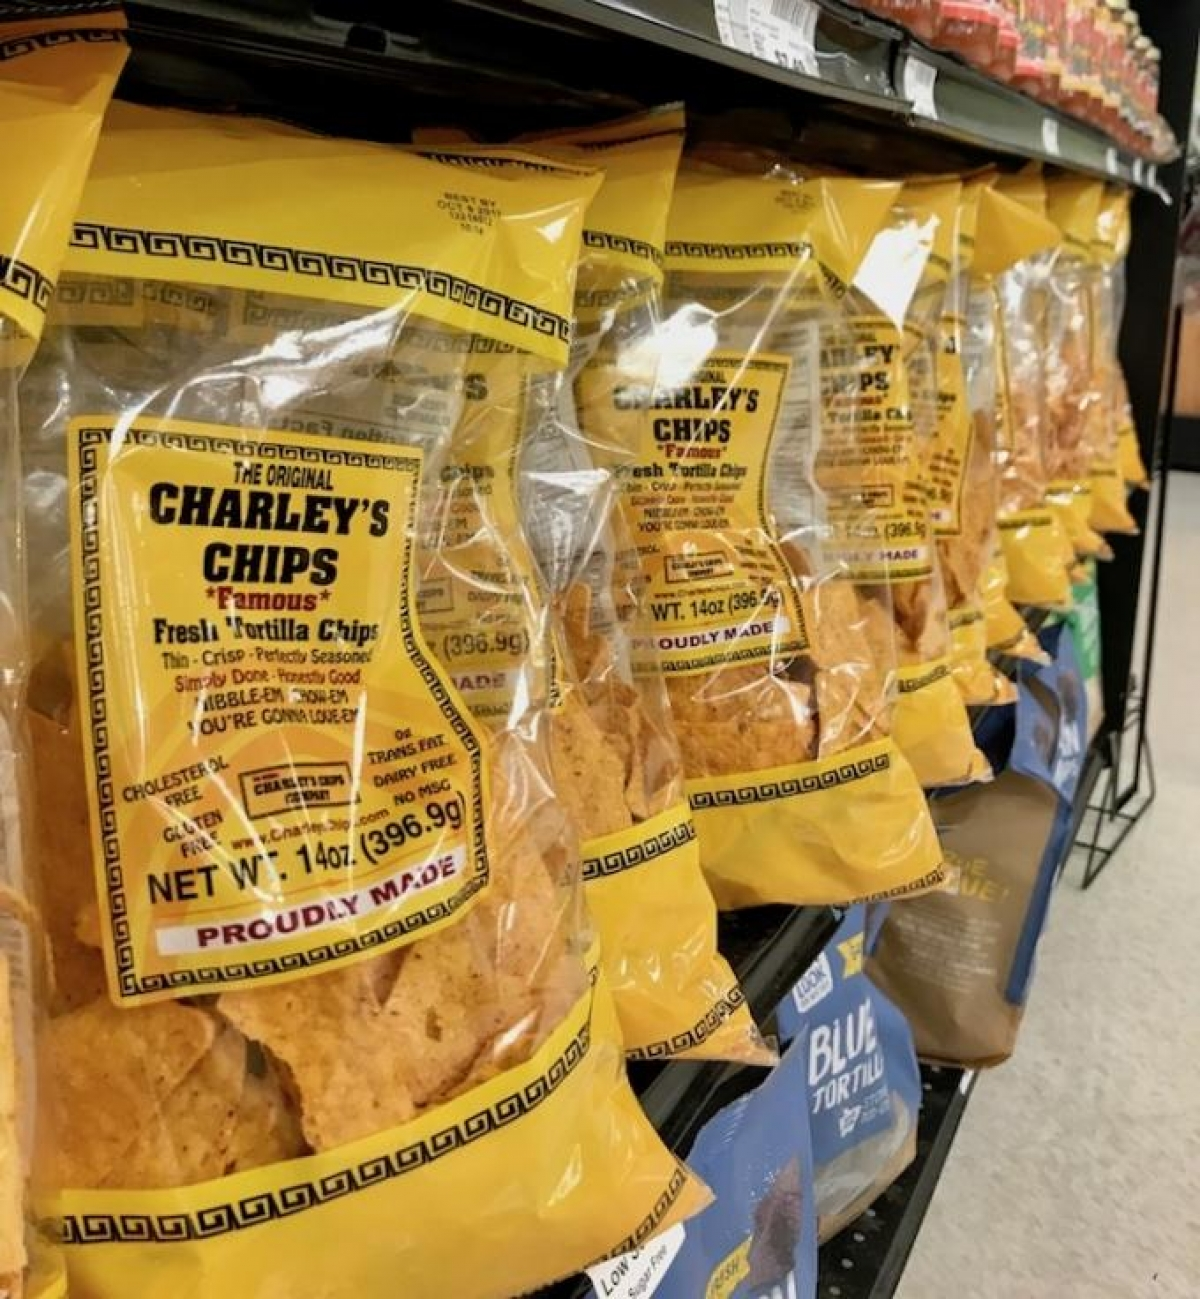 MDARD issues 'do not eat' advisory for all Charley's Chips products